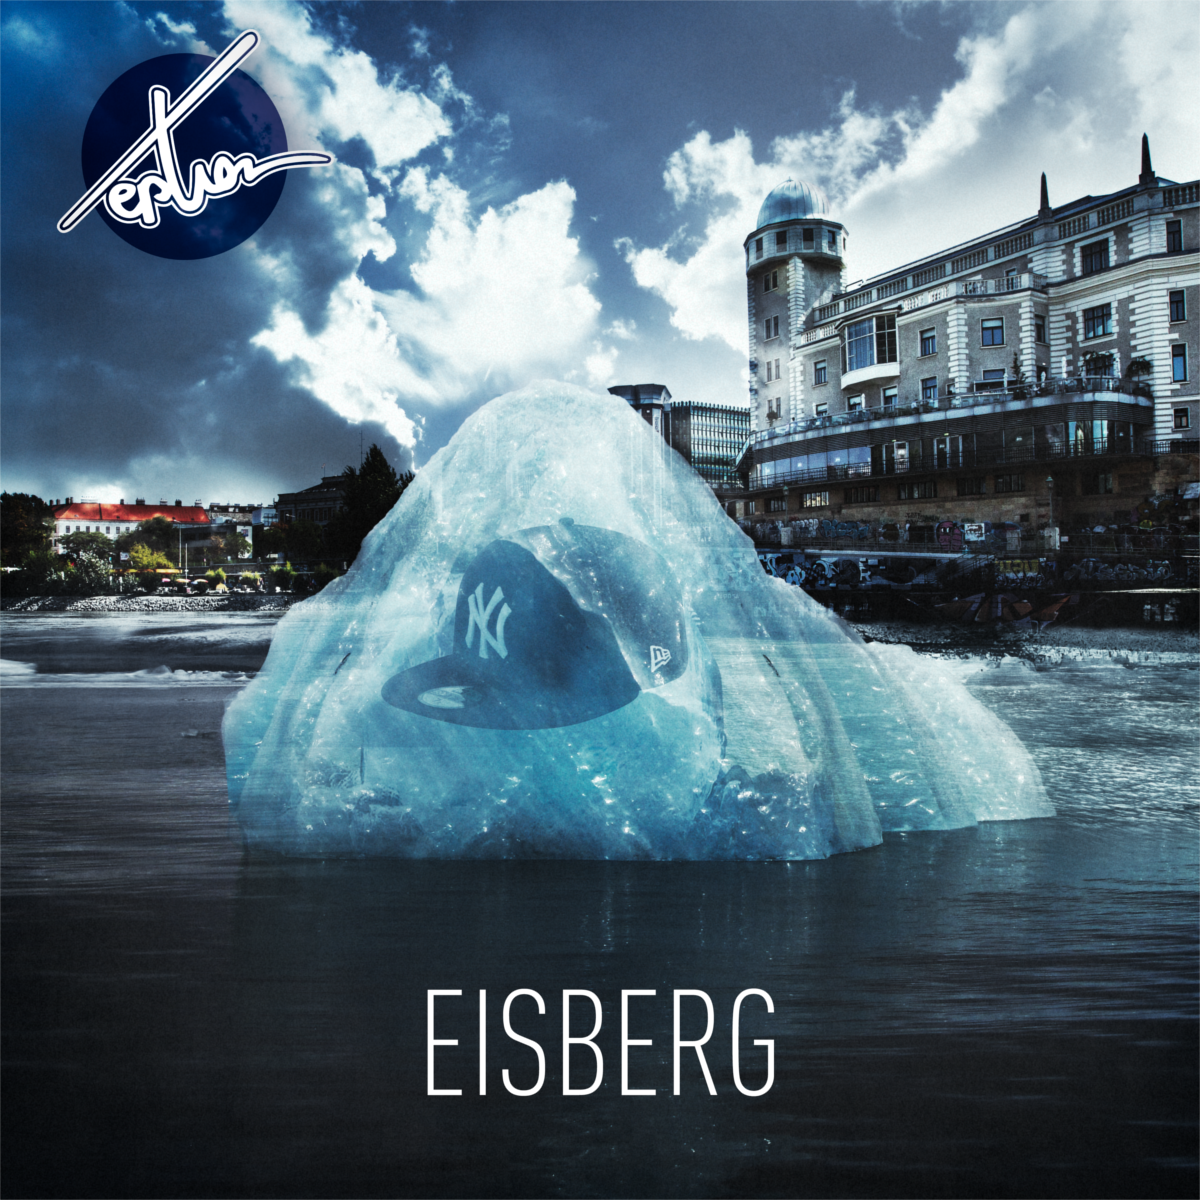 X-EPTION - Eisberg // Single, 2017/11/17 // MMP018 // EAN: 9008798242849